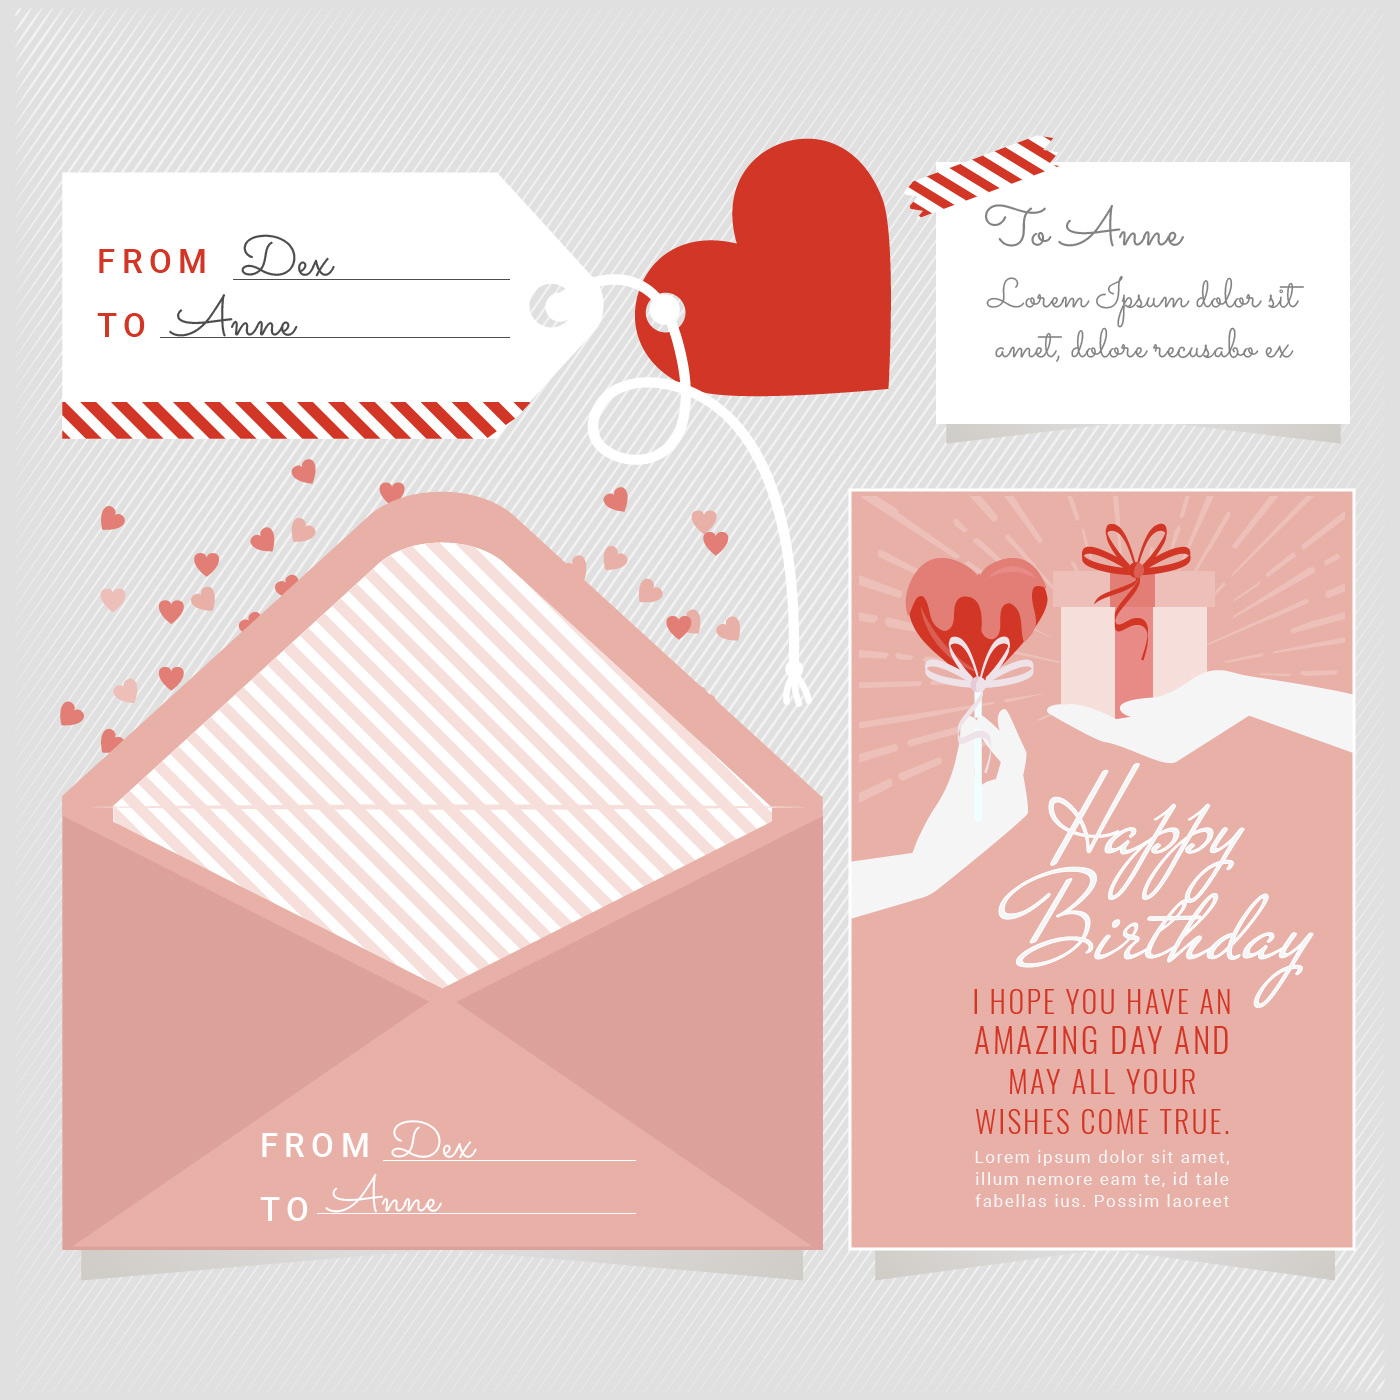 vector birthday card and envelope 556330  download free